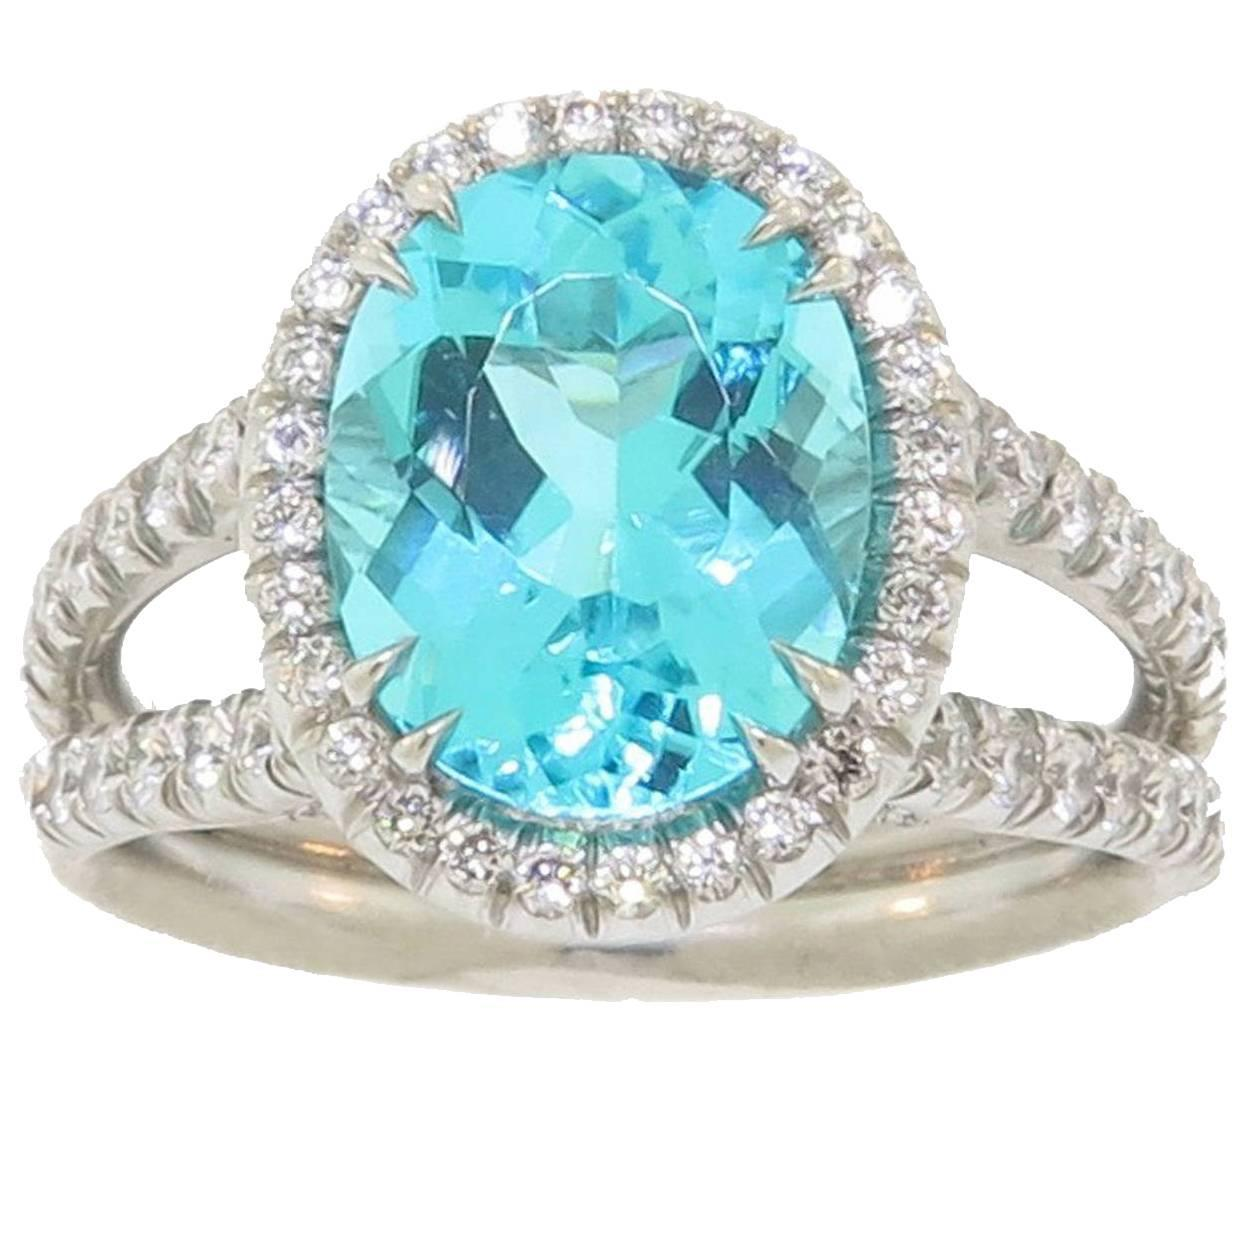 Paraiba Tourmaline Ring With Handmade Diamond Platinum